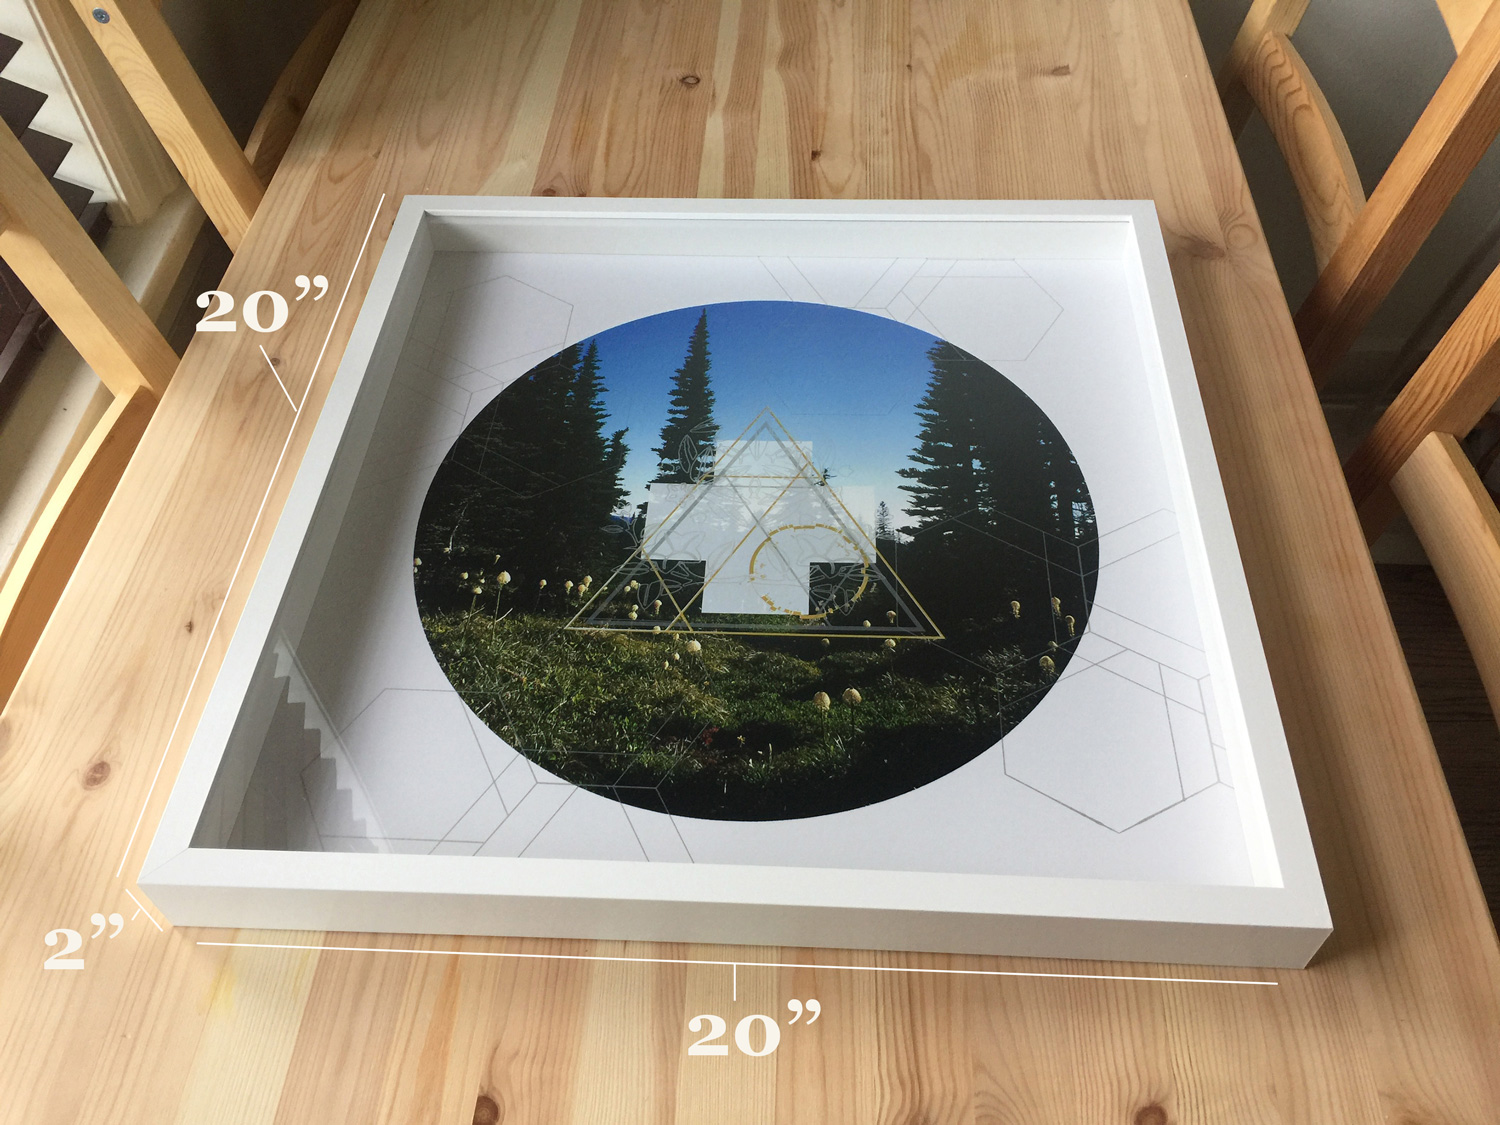 Rainier-Botany-10-detail-table-with-numbers.jpg